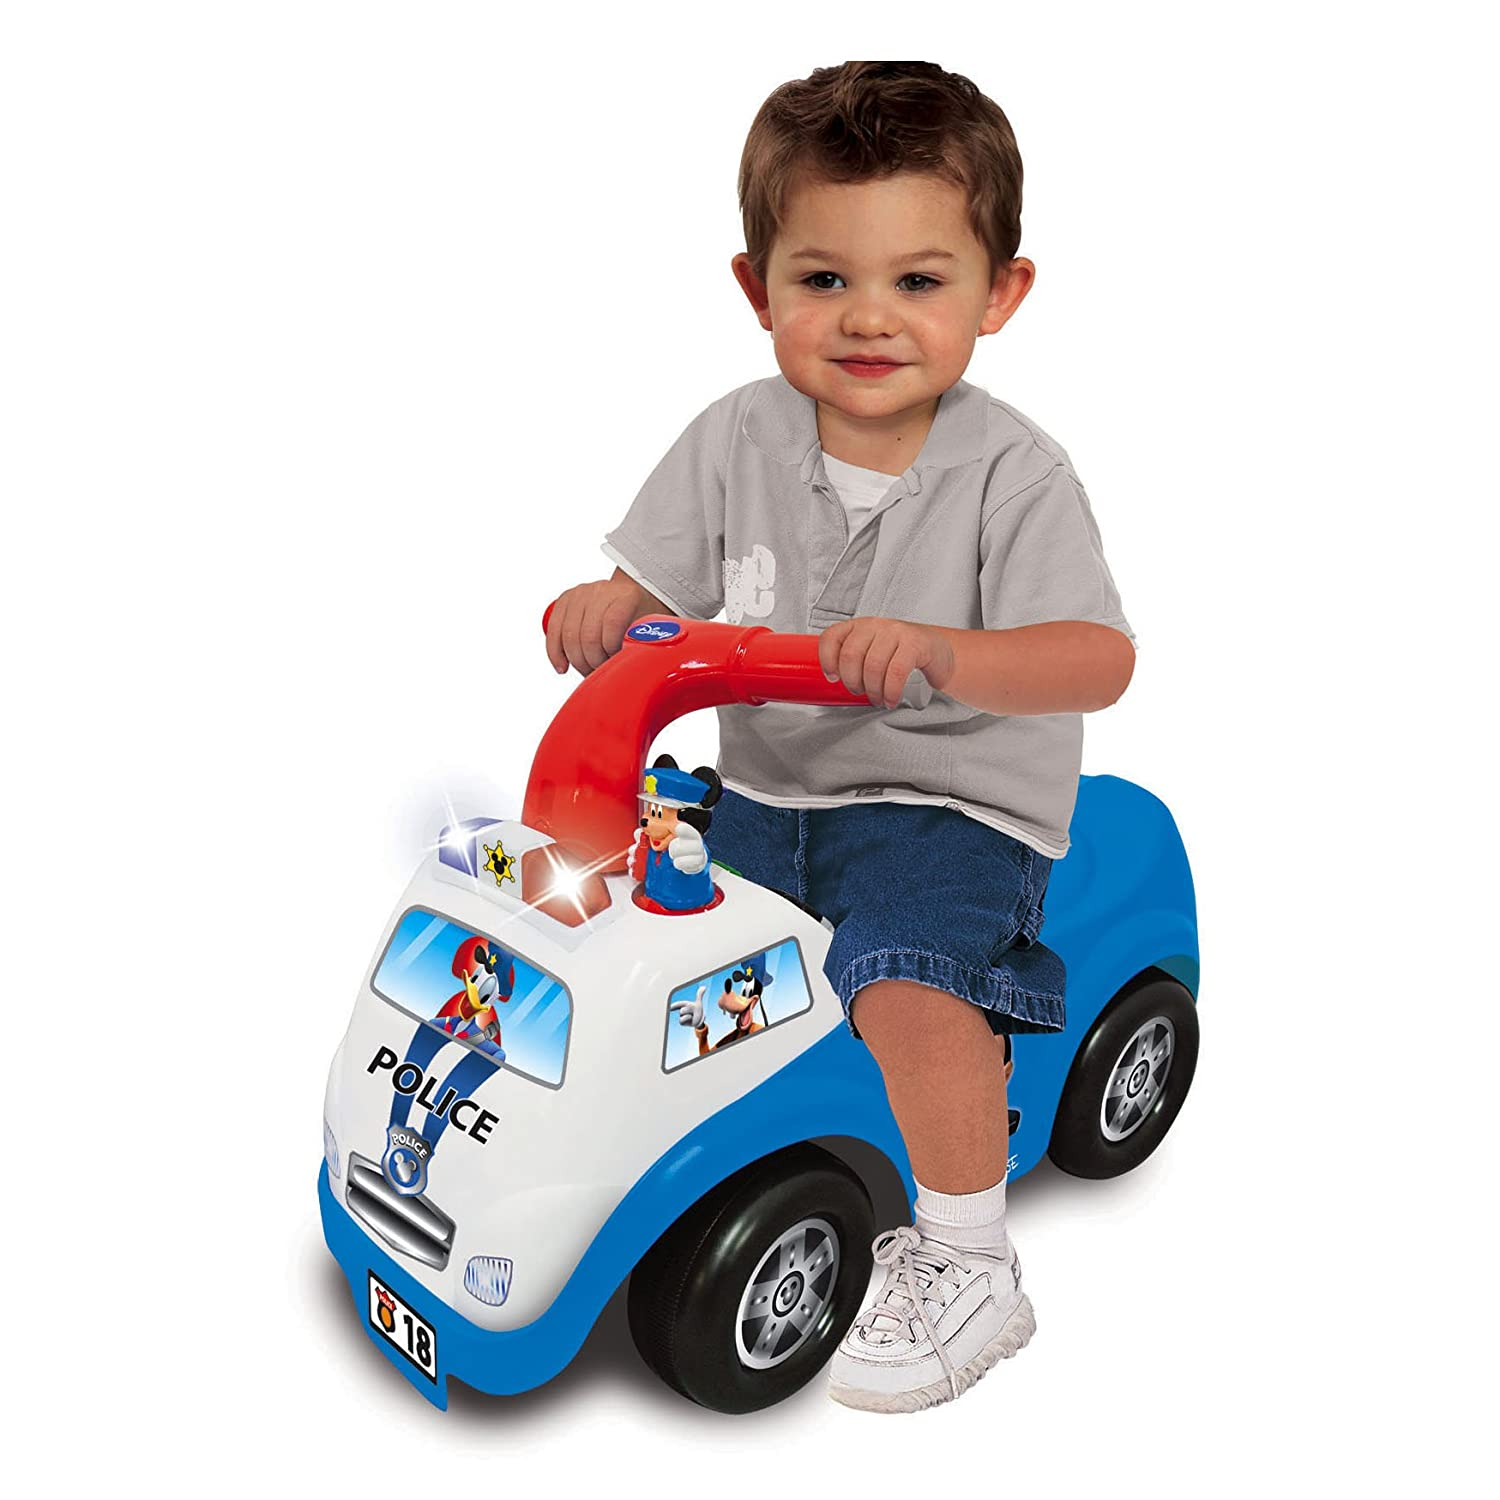 Amazon Kid land Disney Mickey Mouse Police Drive Along Ride